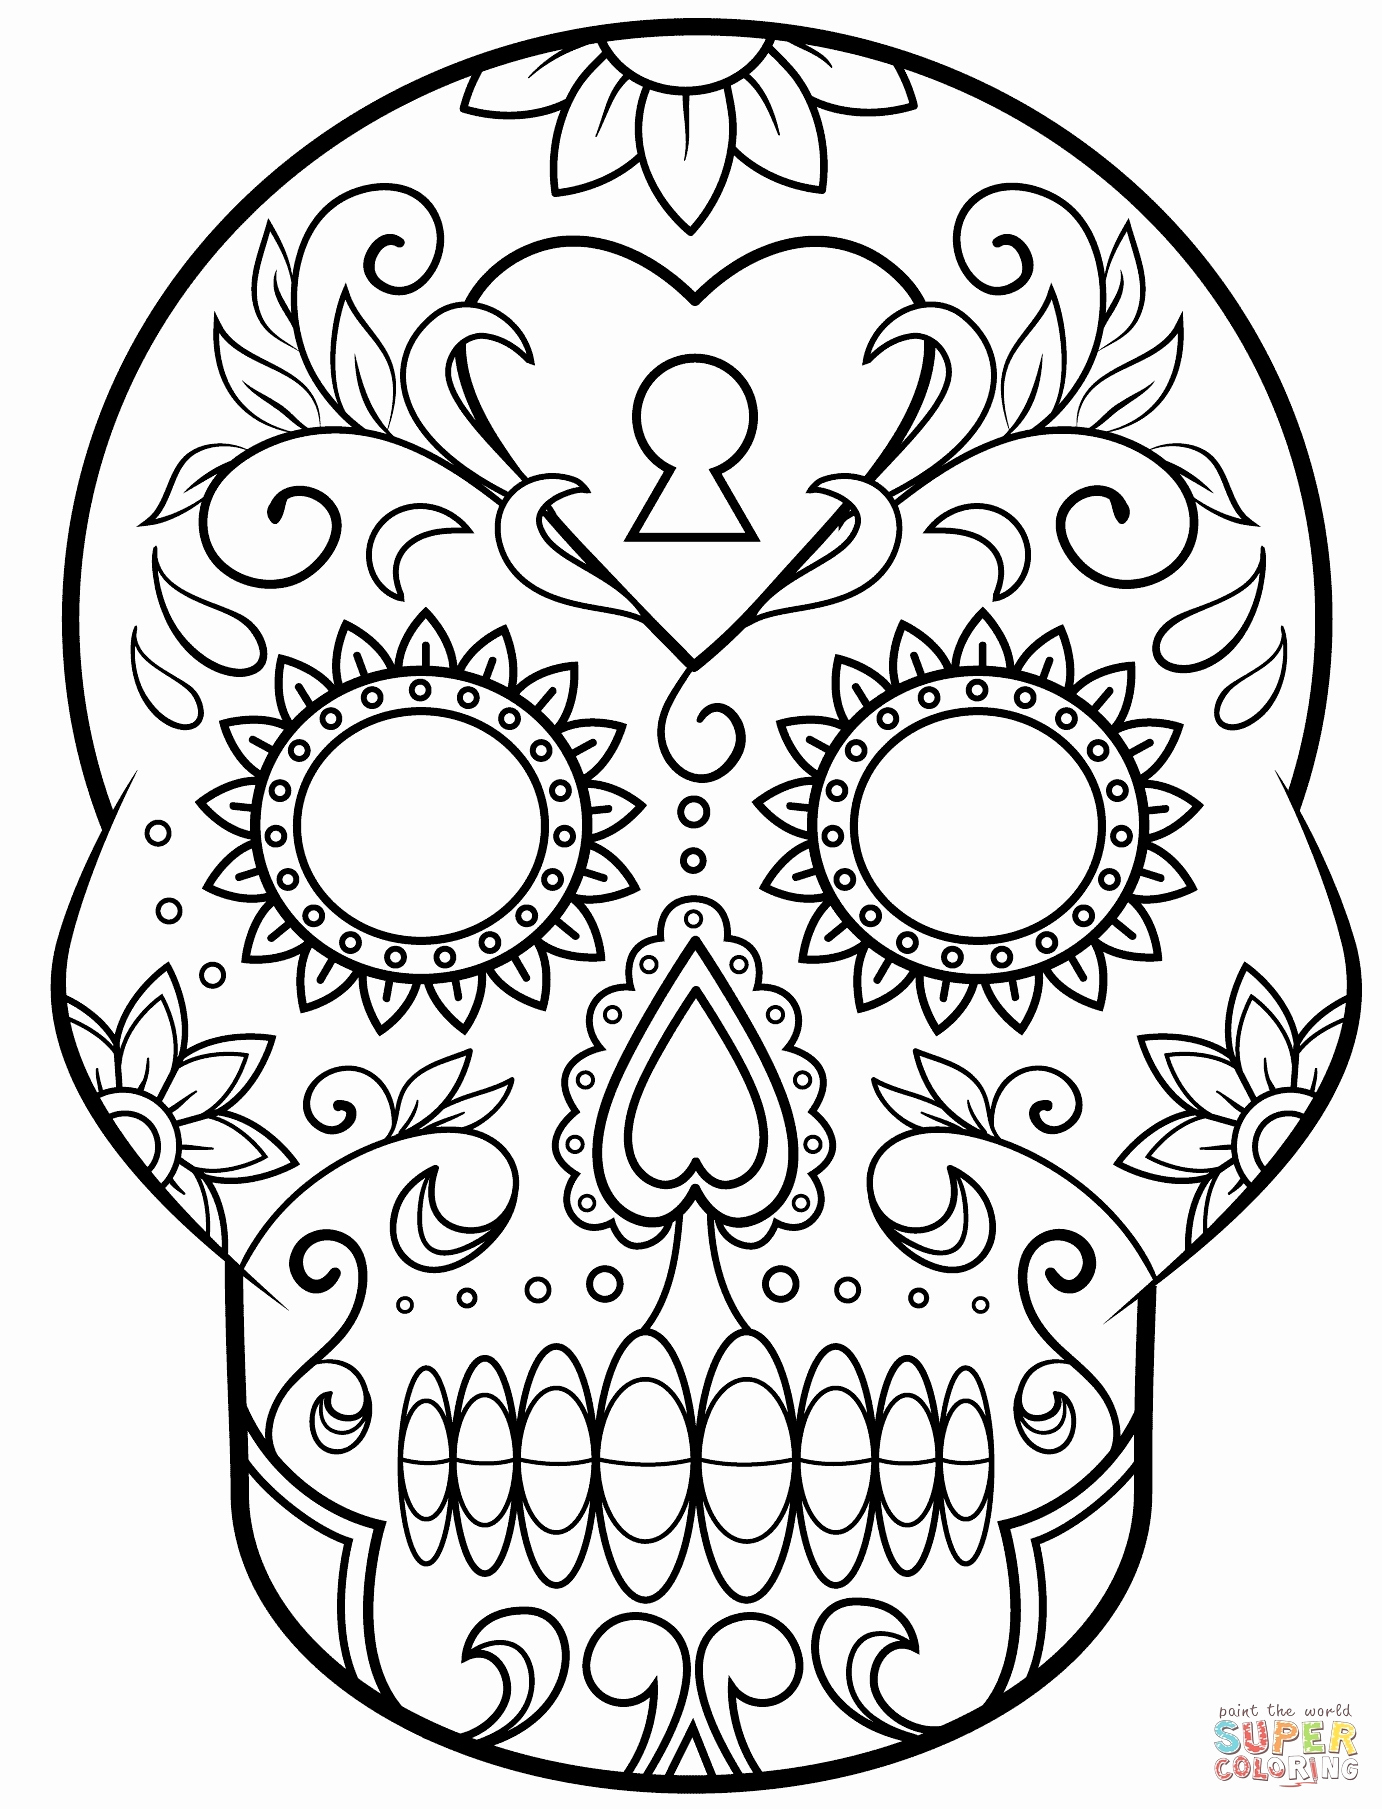 Halloween Coloring Pages Skeleton | Free Coloring Pages - Free Printable Skeleton Coloring Pages